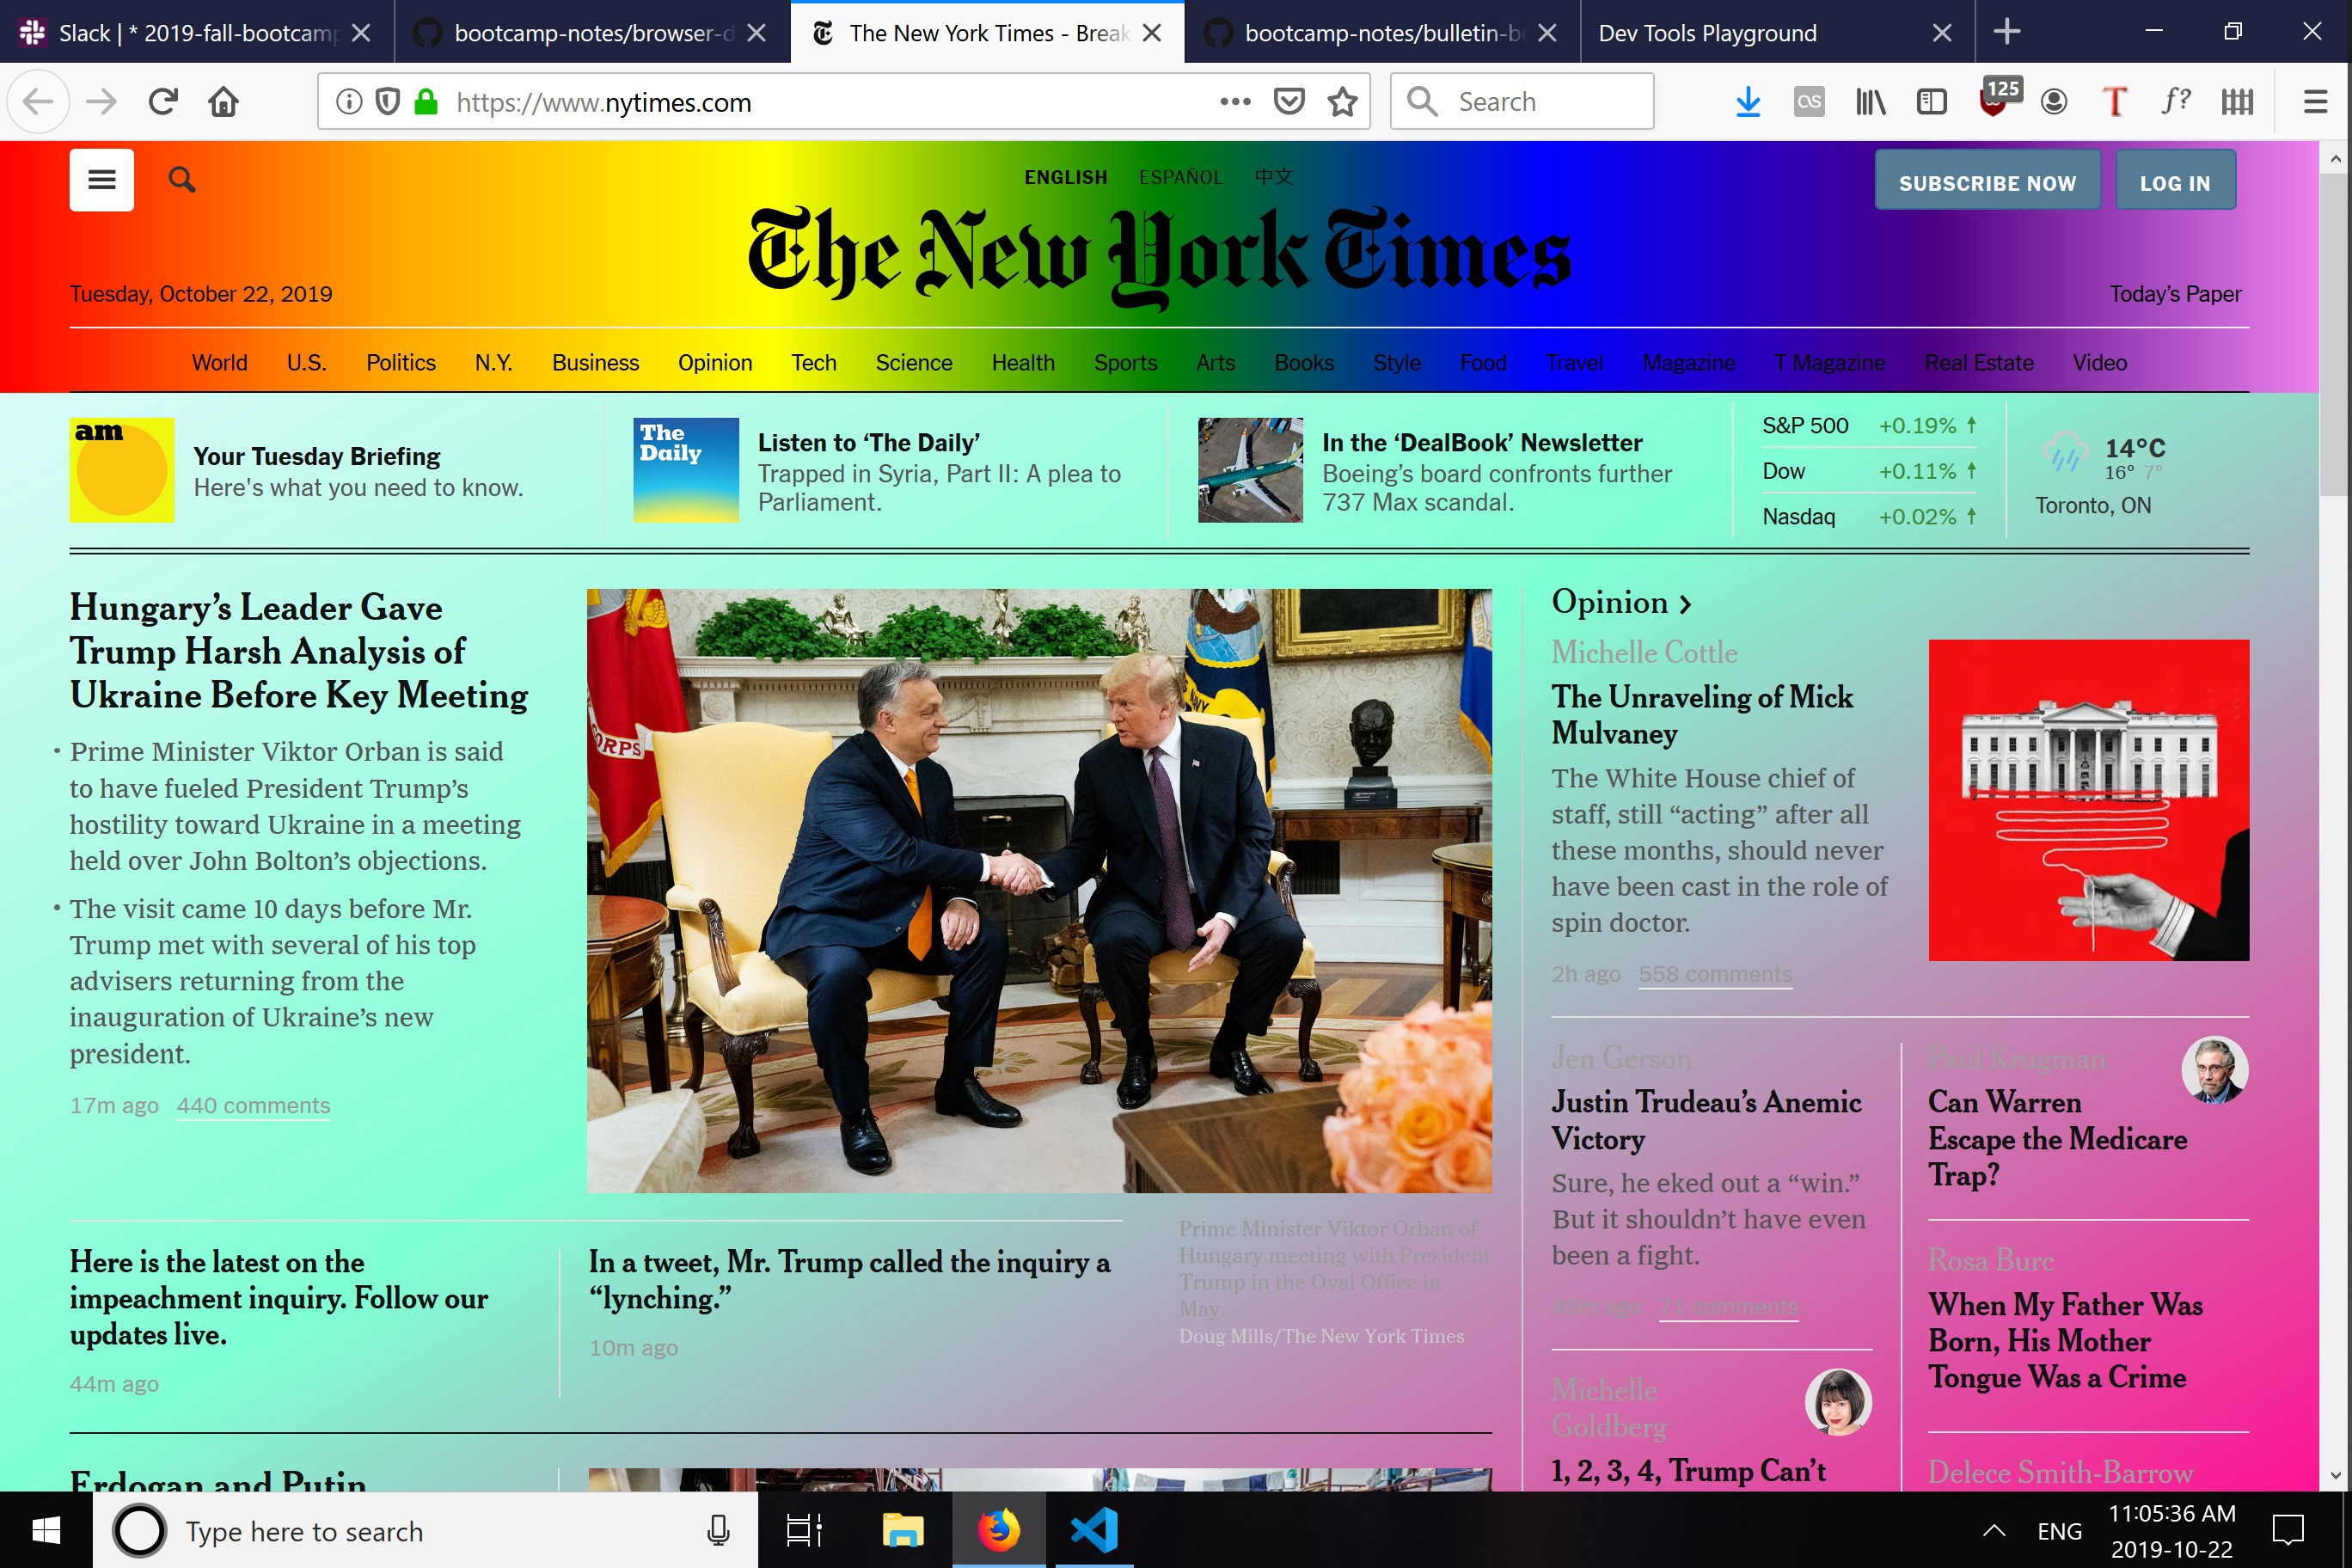 A screenshot of the New York Times website, edited so that it has a rainbow gradient background.